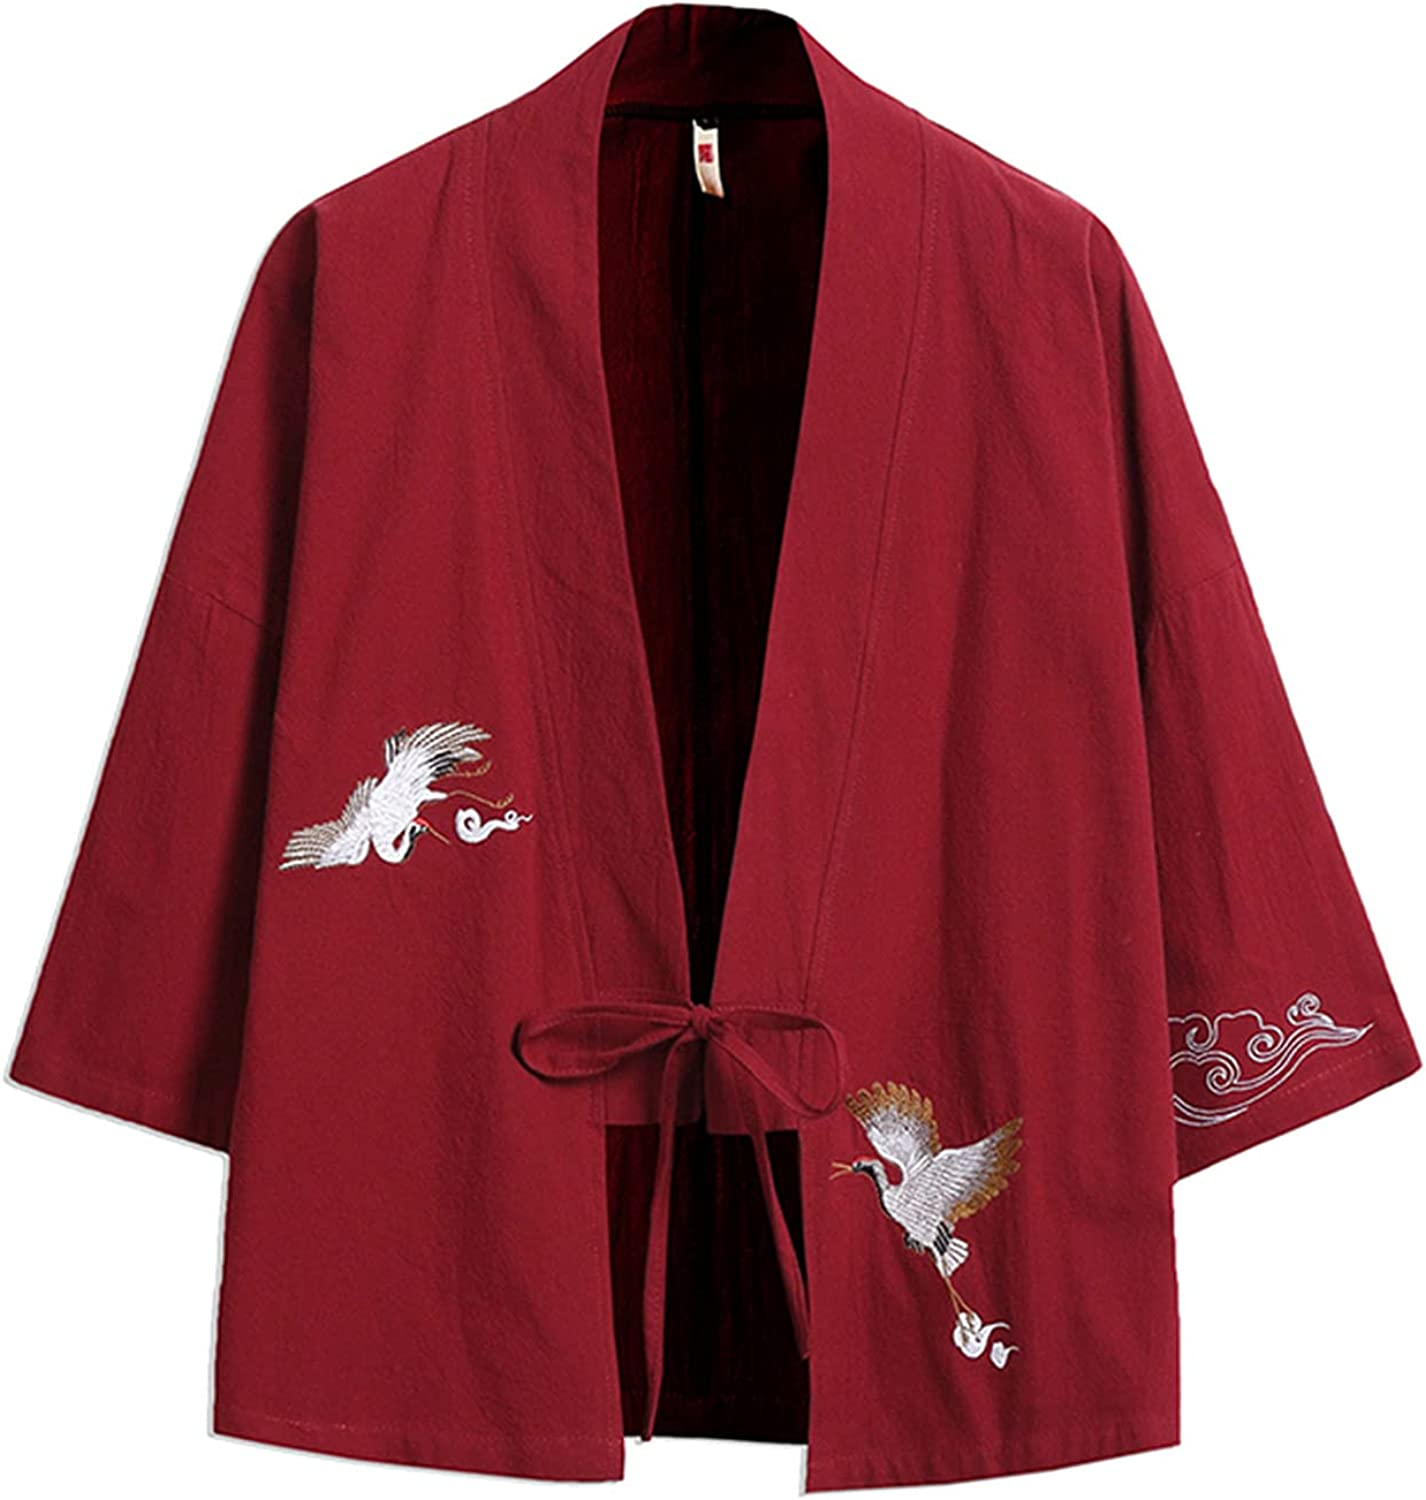 Pure Pang Men's Japanese Kimono Cardigan Crane Print 3/4 Sleeve Open Front Tops Outwear with Drawstring Closure